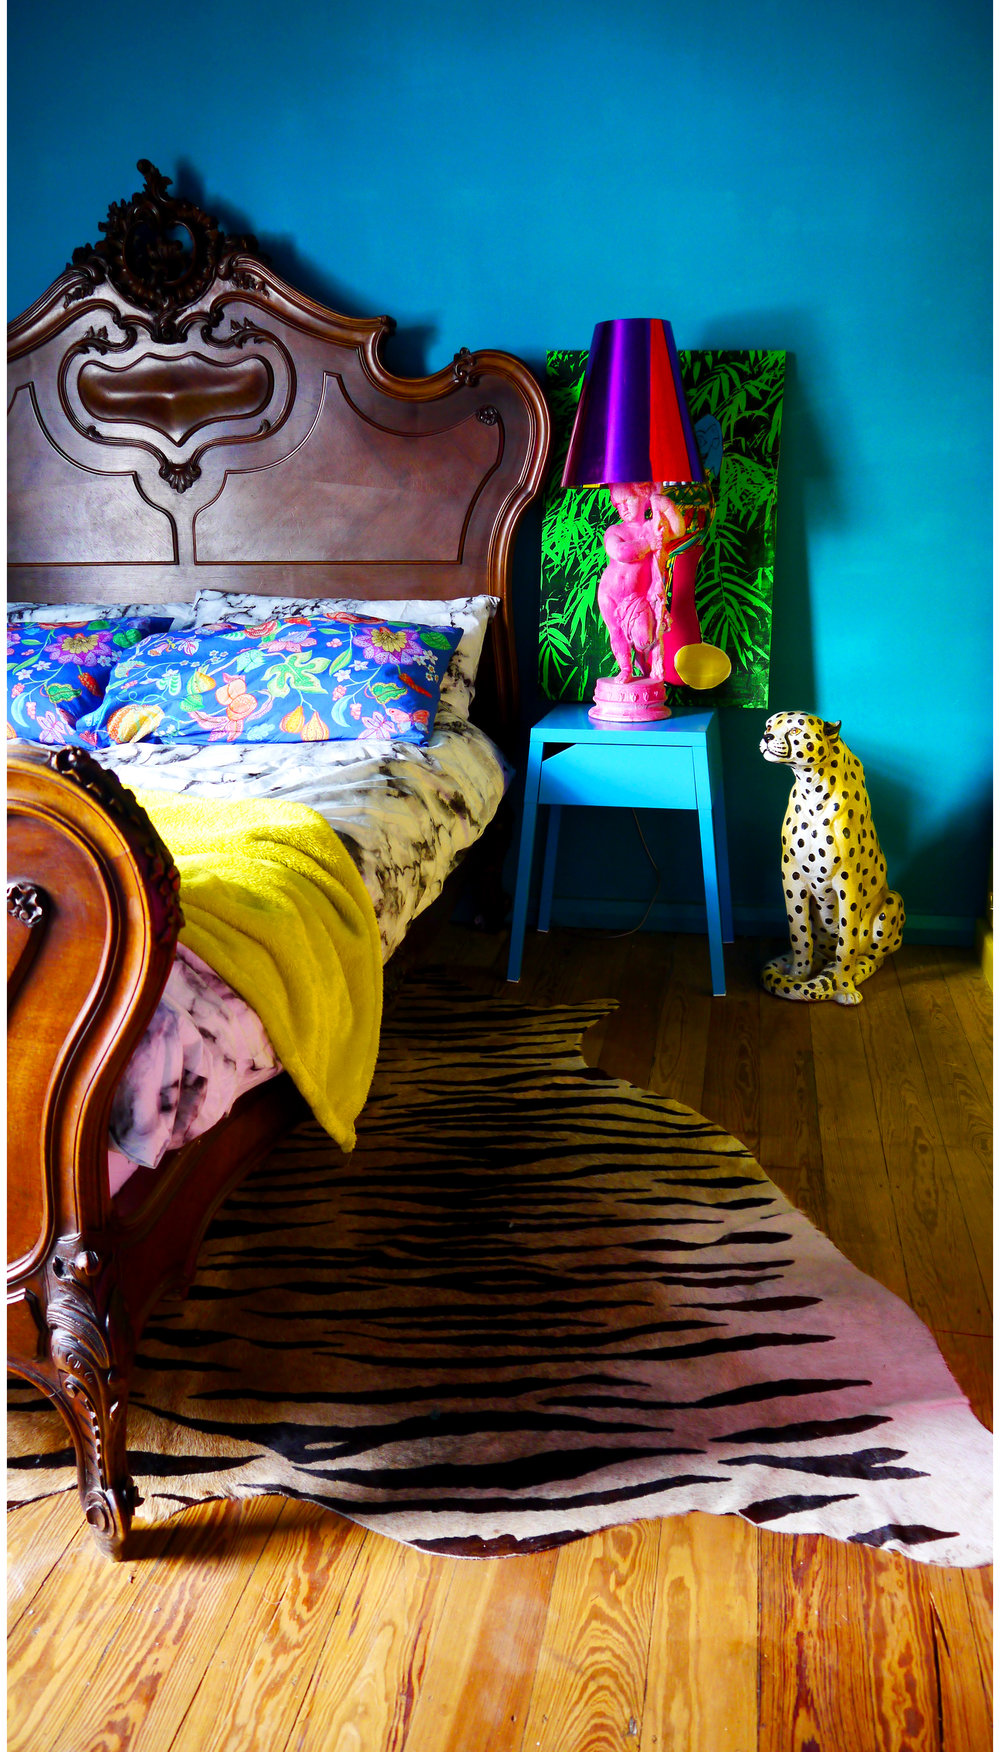 Bedroom Bed Portrait w border.jpg